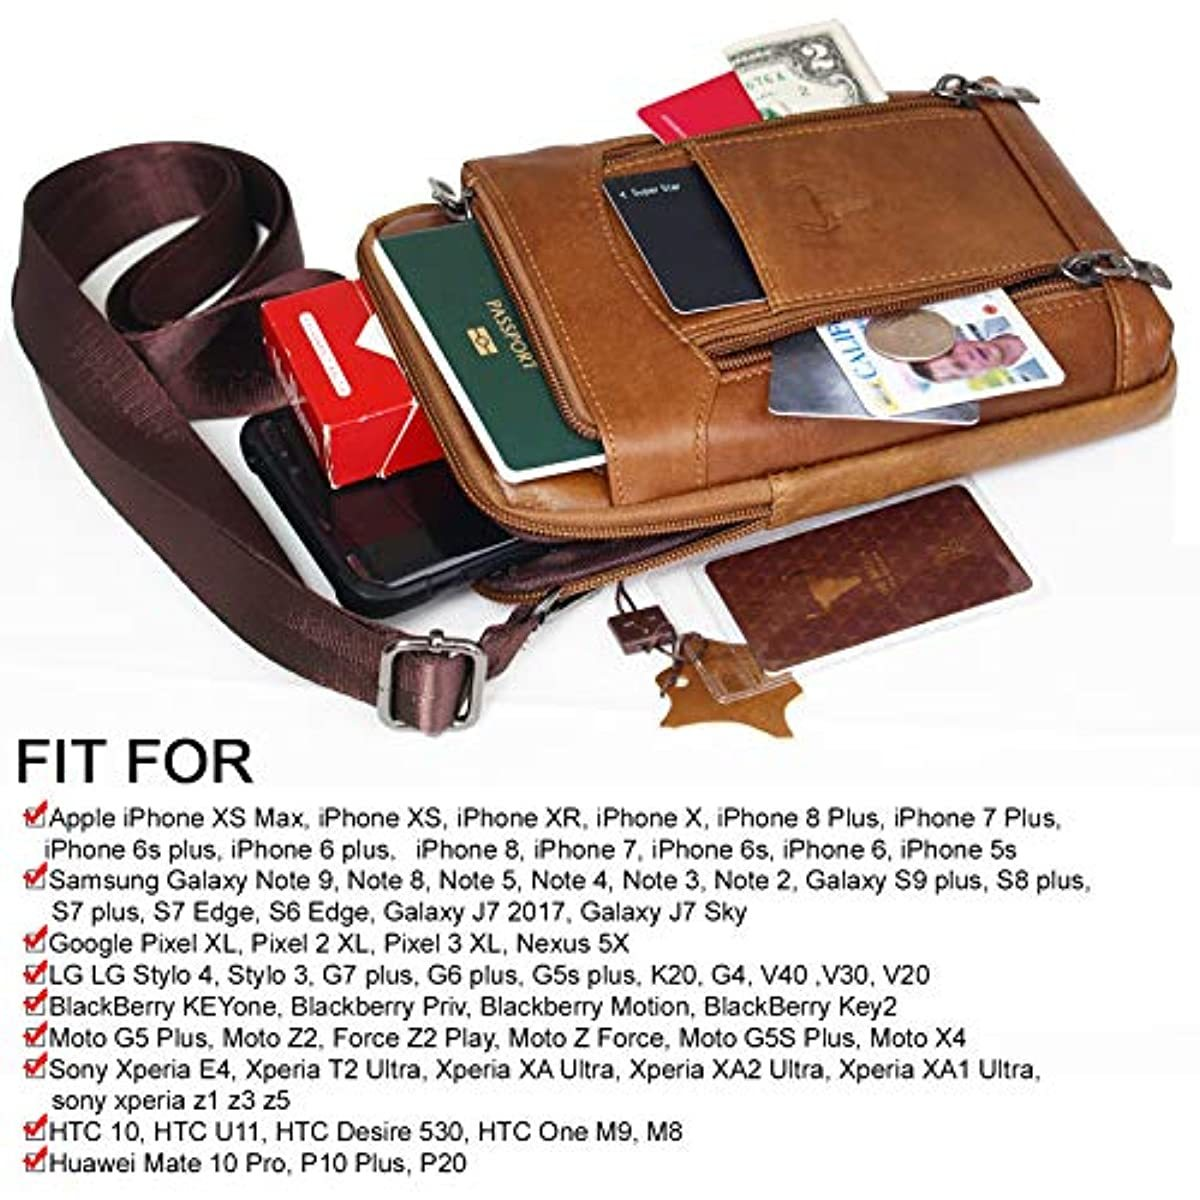 Phone Purse iPhone 11 Max Pro Leather Cell phone Holster Case Belt Loop Pouch Travel Messenger Bag 1312 - ENCACC